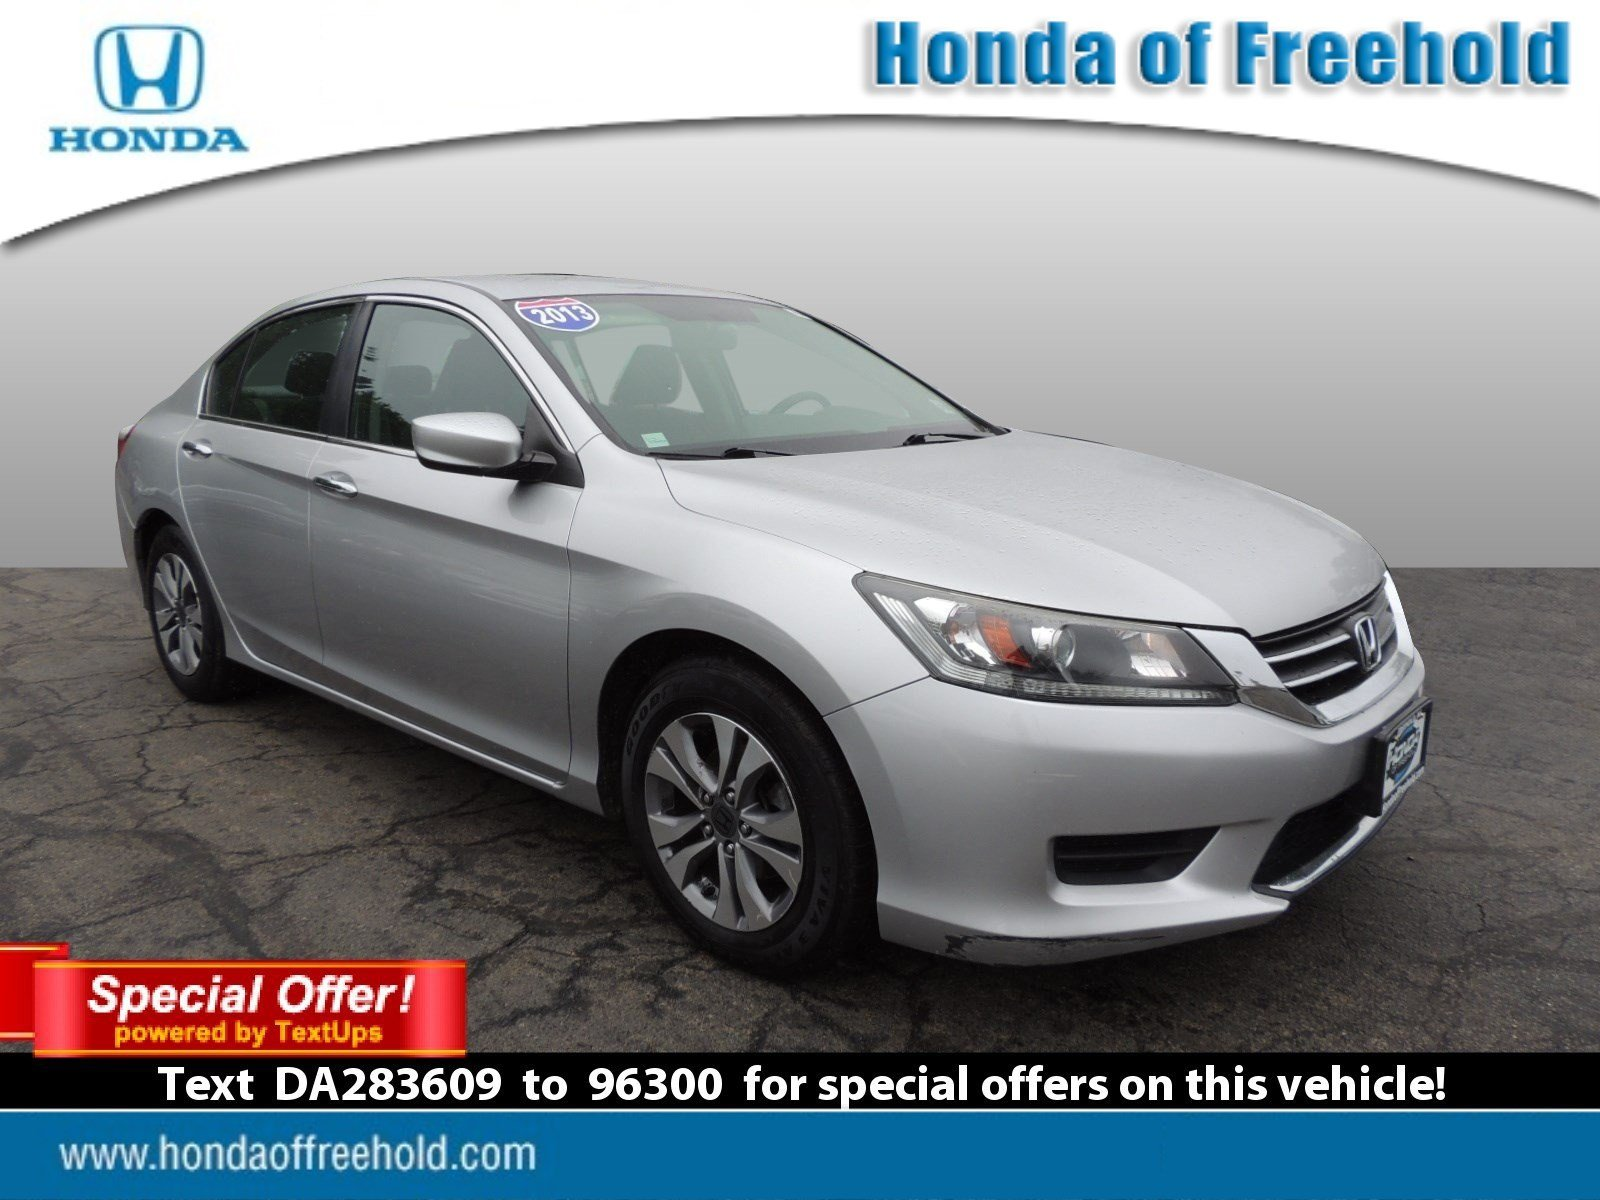 Pre Owned 2013 Honda Accord Sdn LX 4dr Car in Freehold T6224